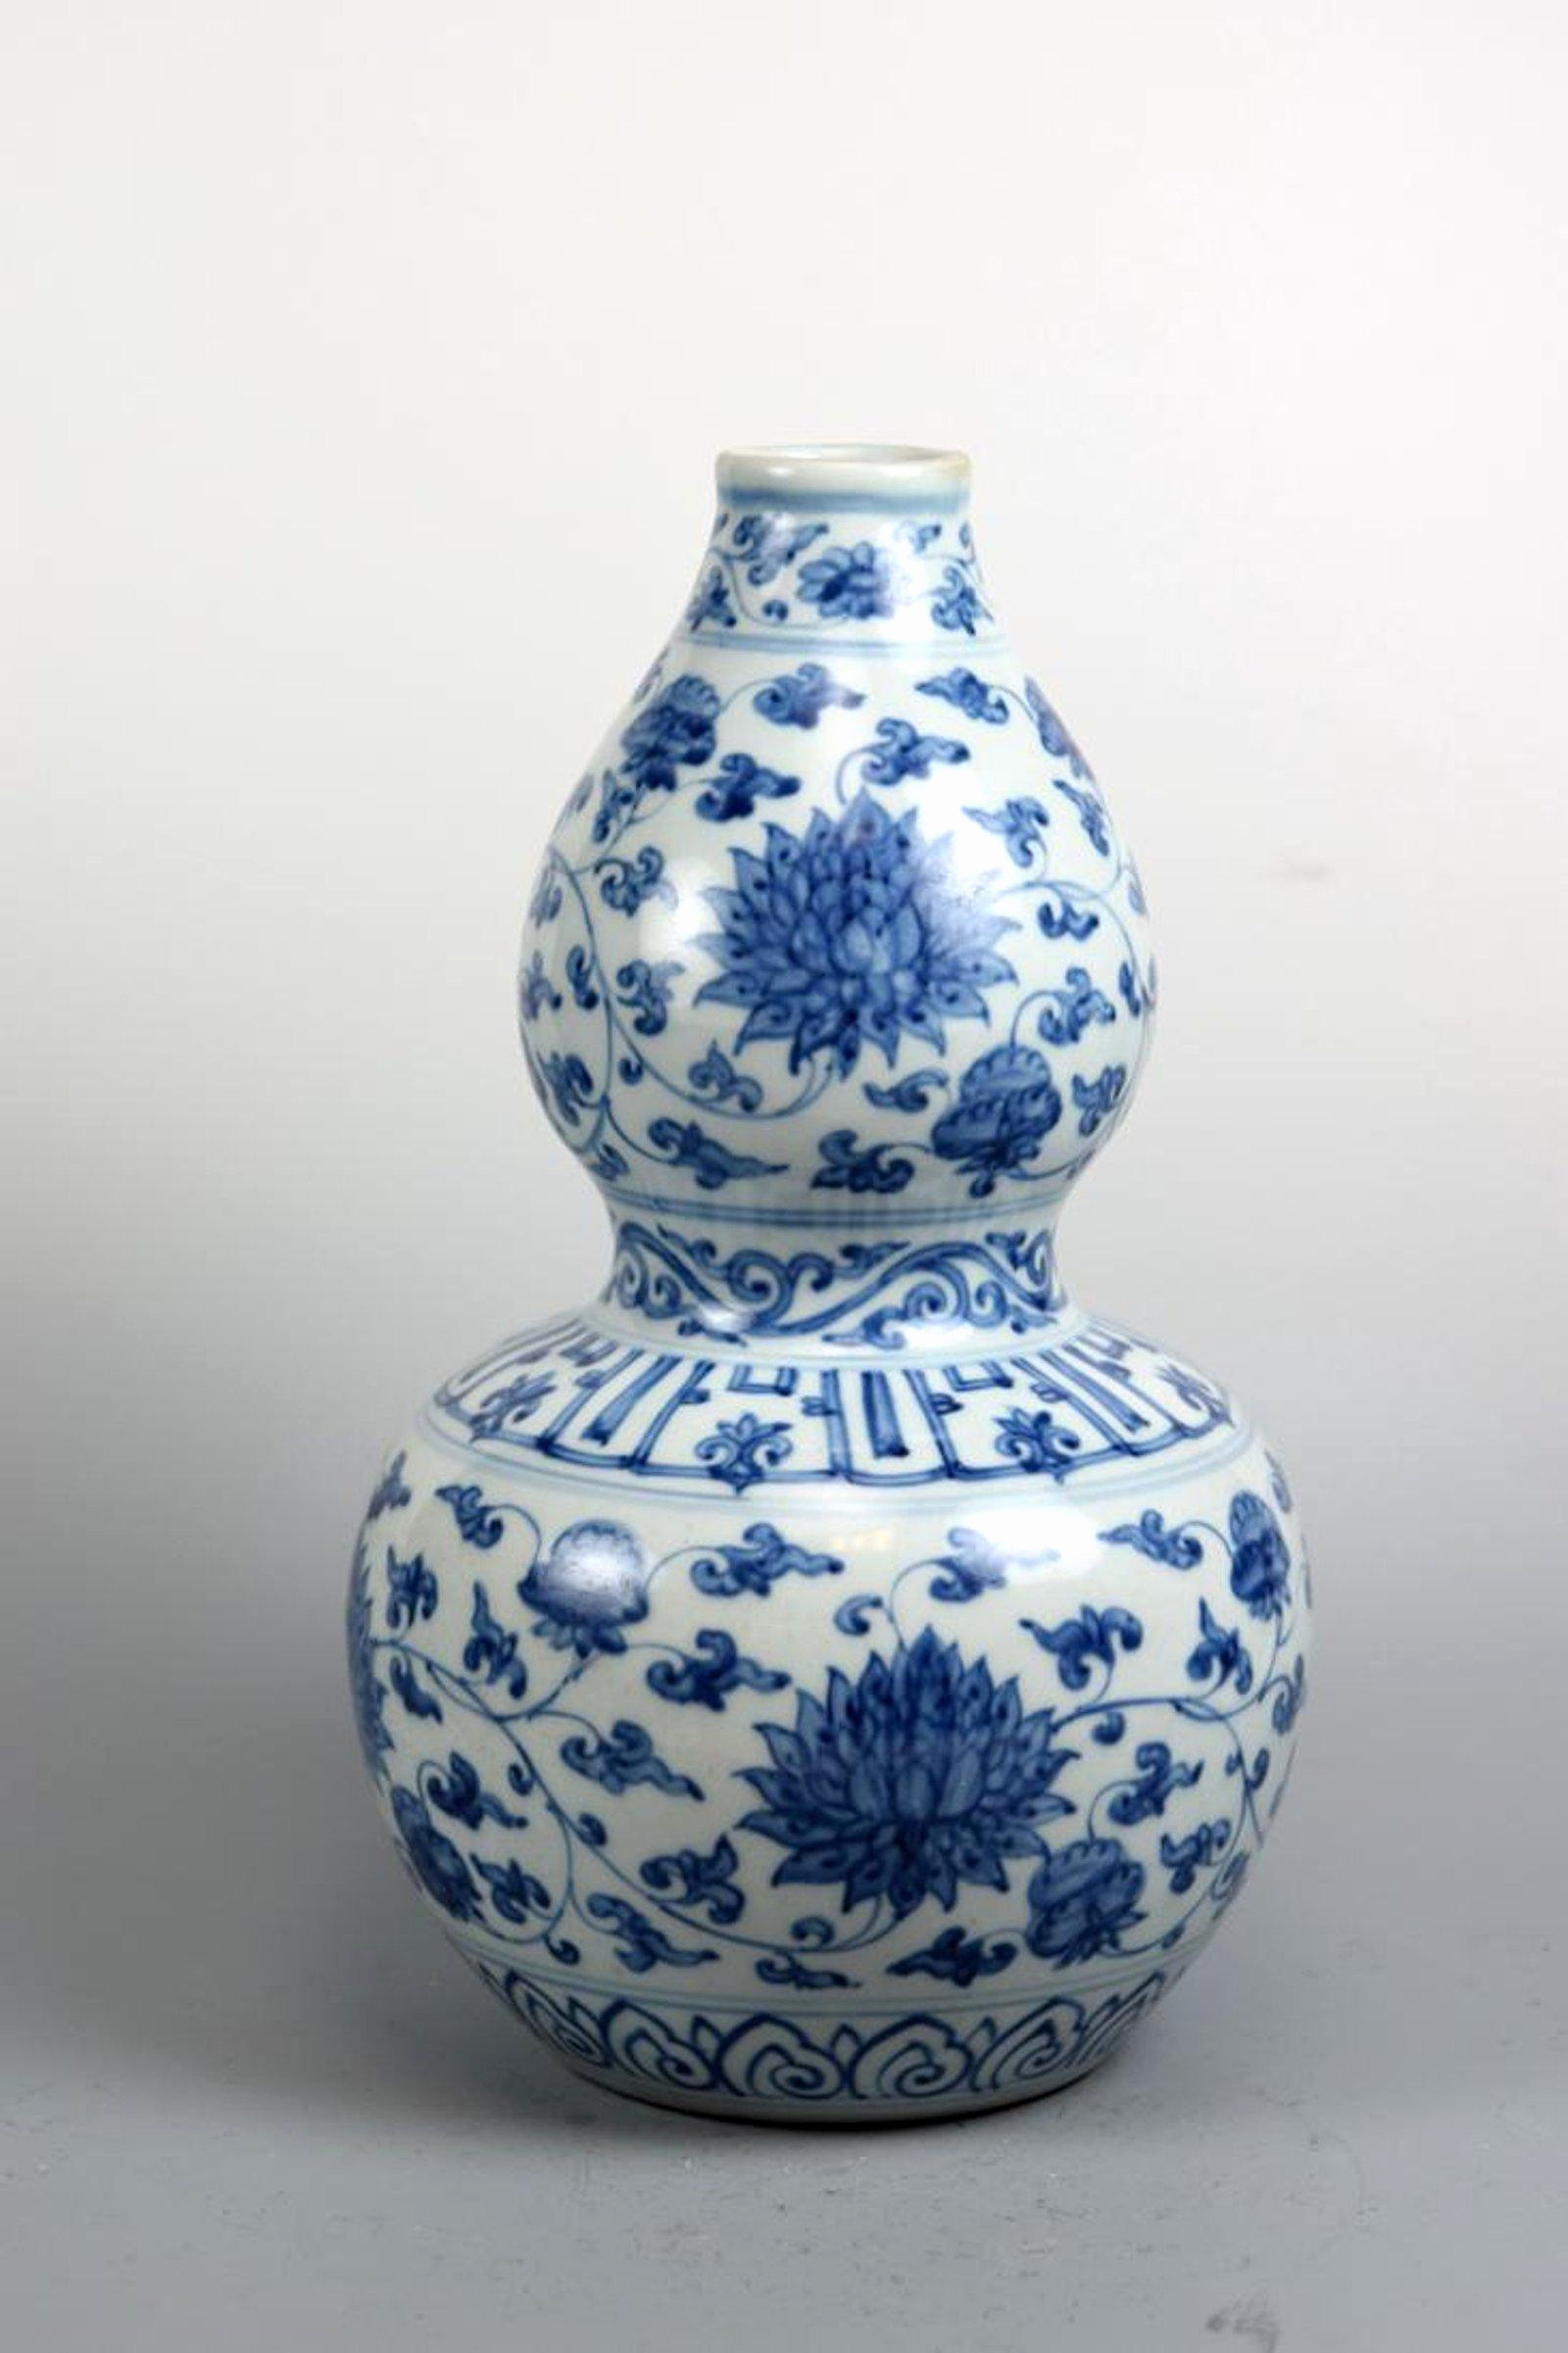 large blue and white vase of blue and white vases gallery a ming style blue and white vase pertaining to blue and white vases images 25 new blue and white vases cheap of blue and white